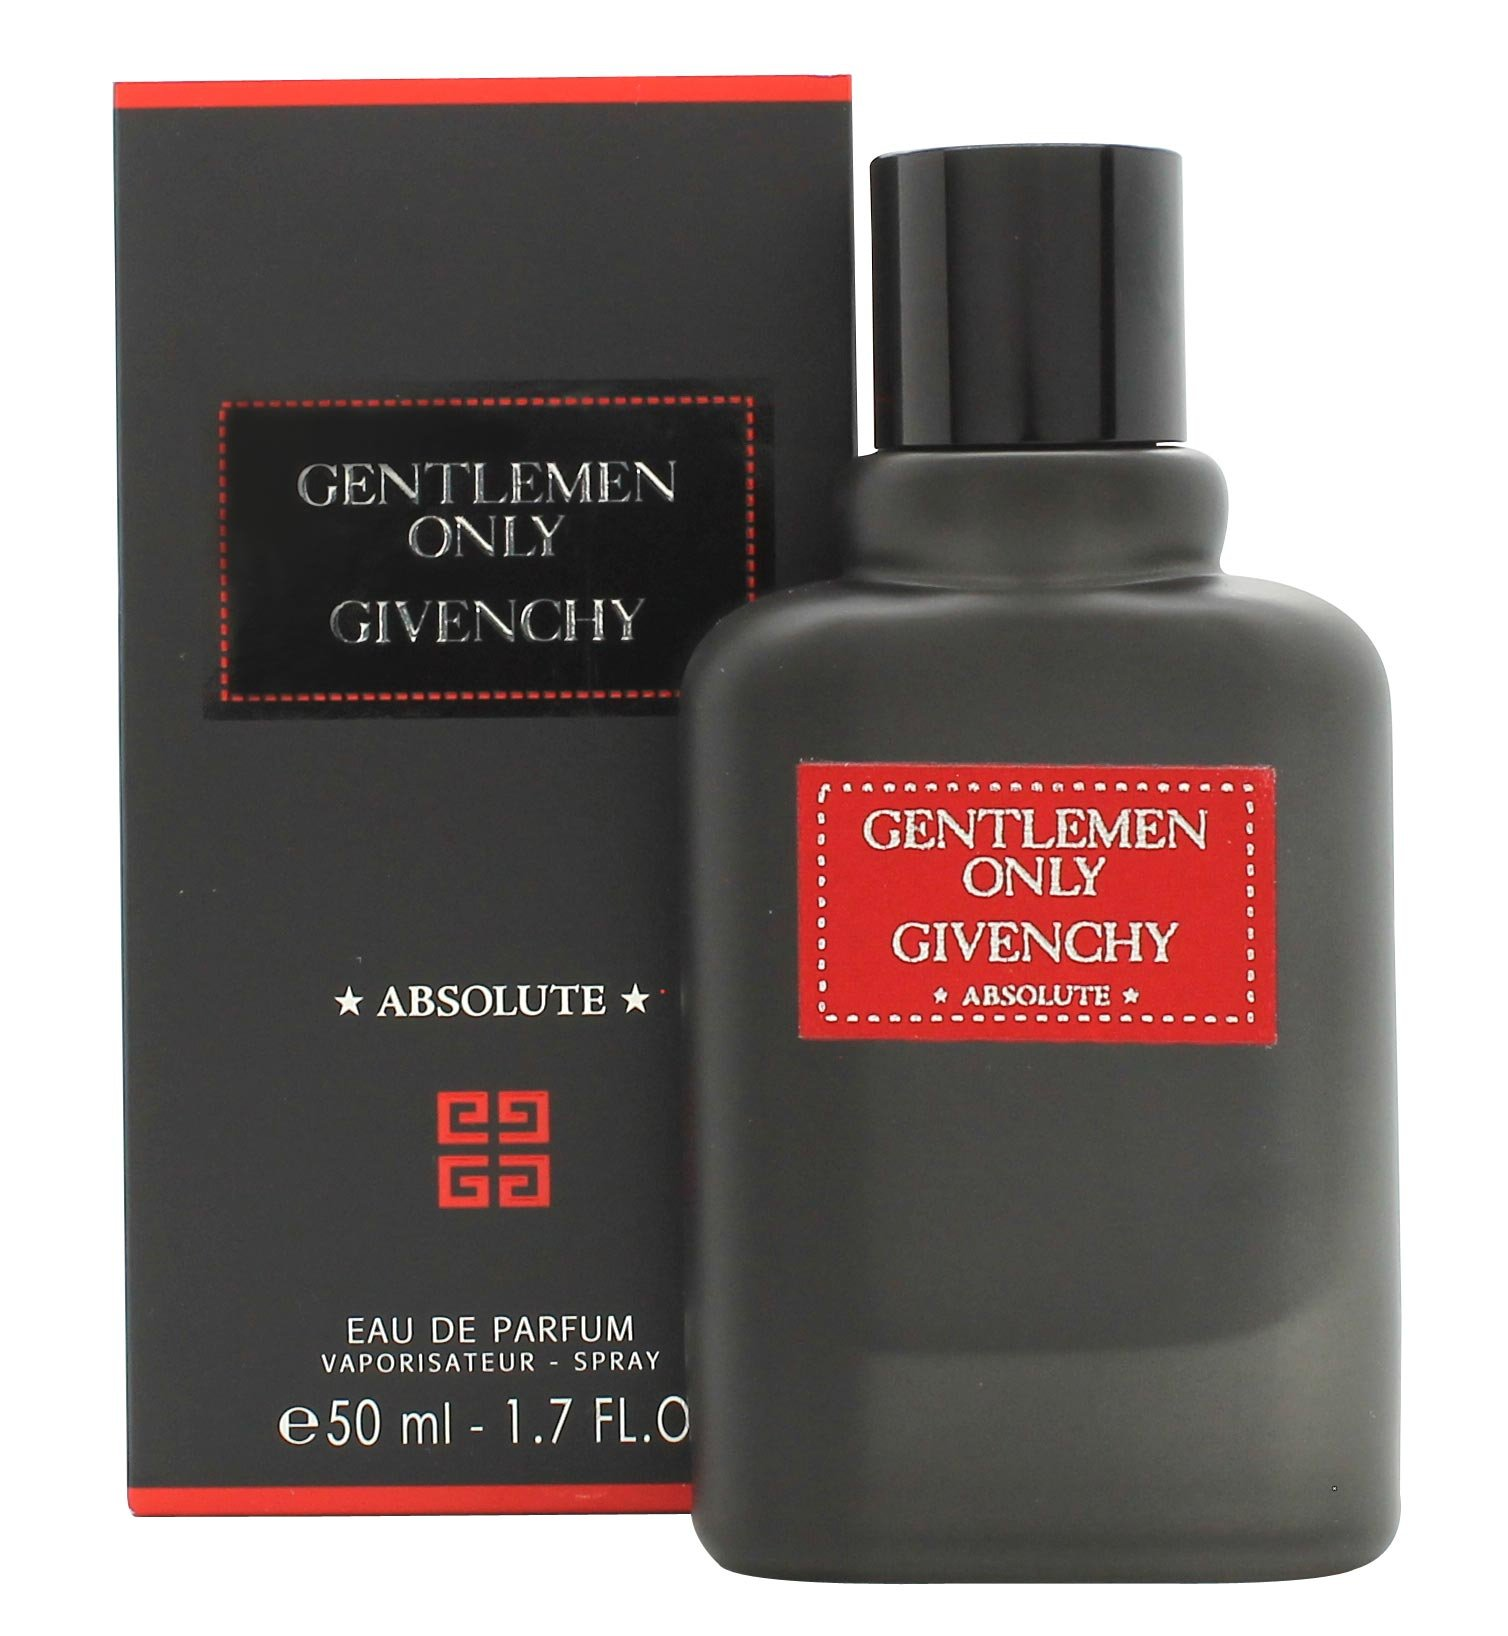 Givenchy Gentlemen Only Absolute Eau de Parfum 1.7oz (50ml) Spray